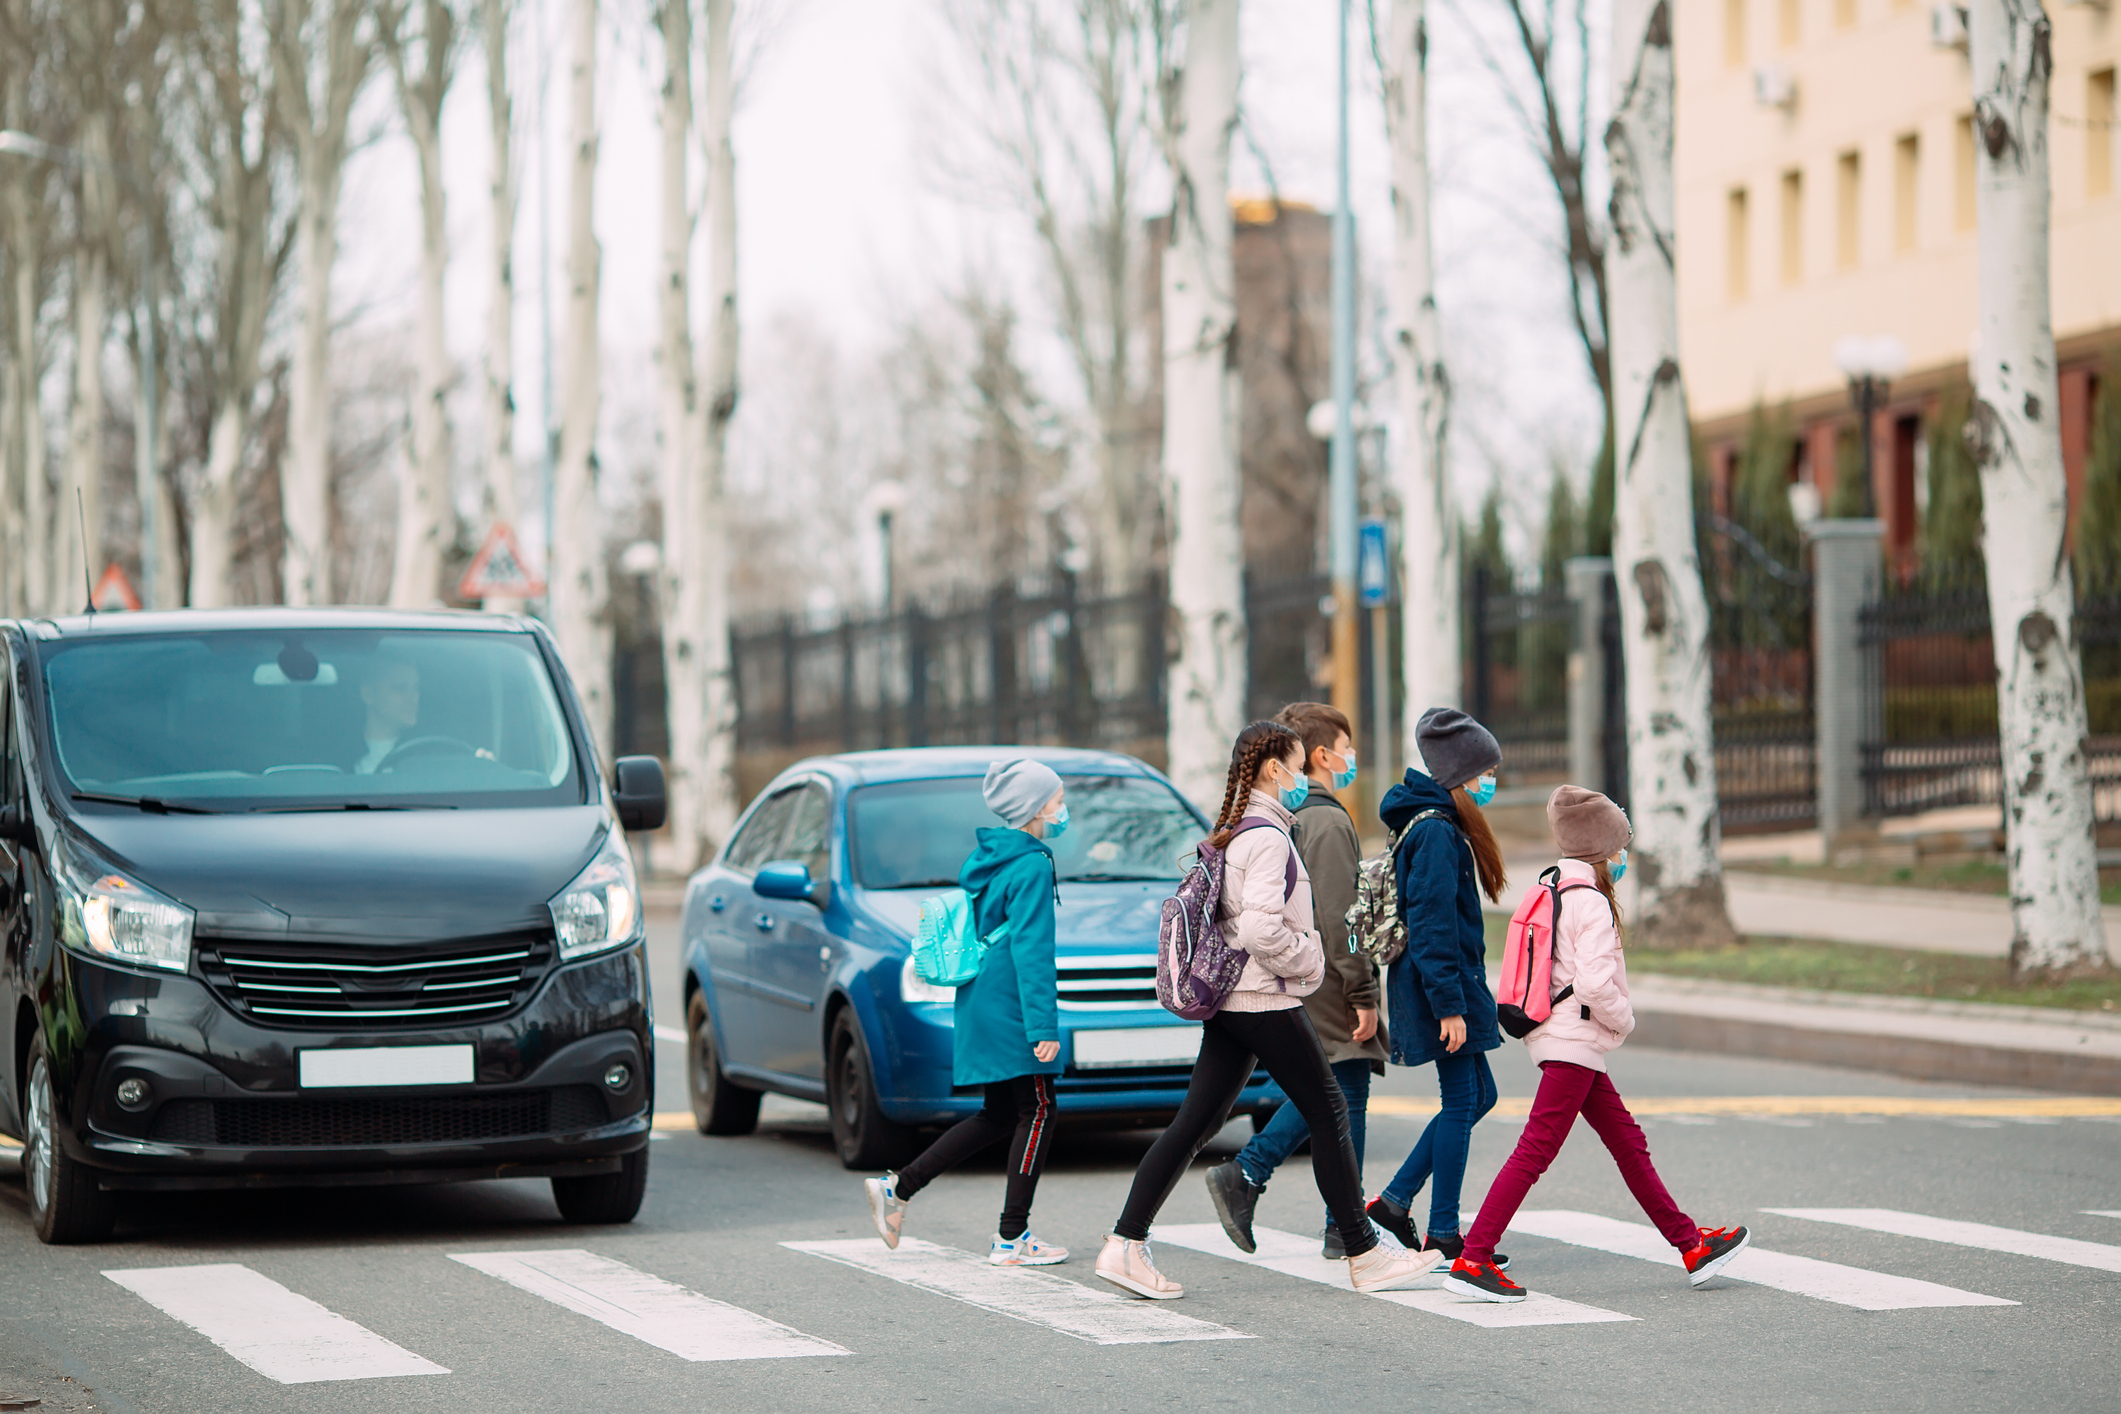 Photo of school children crossing the road while cars are stopped.